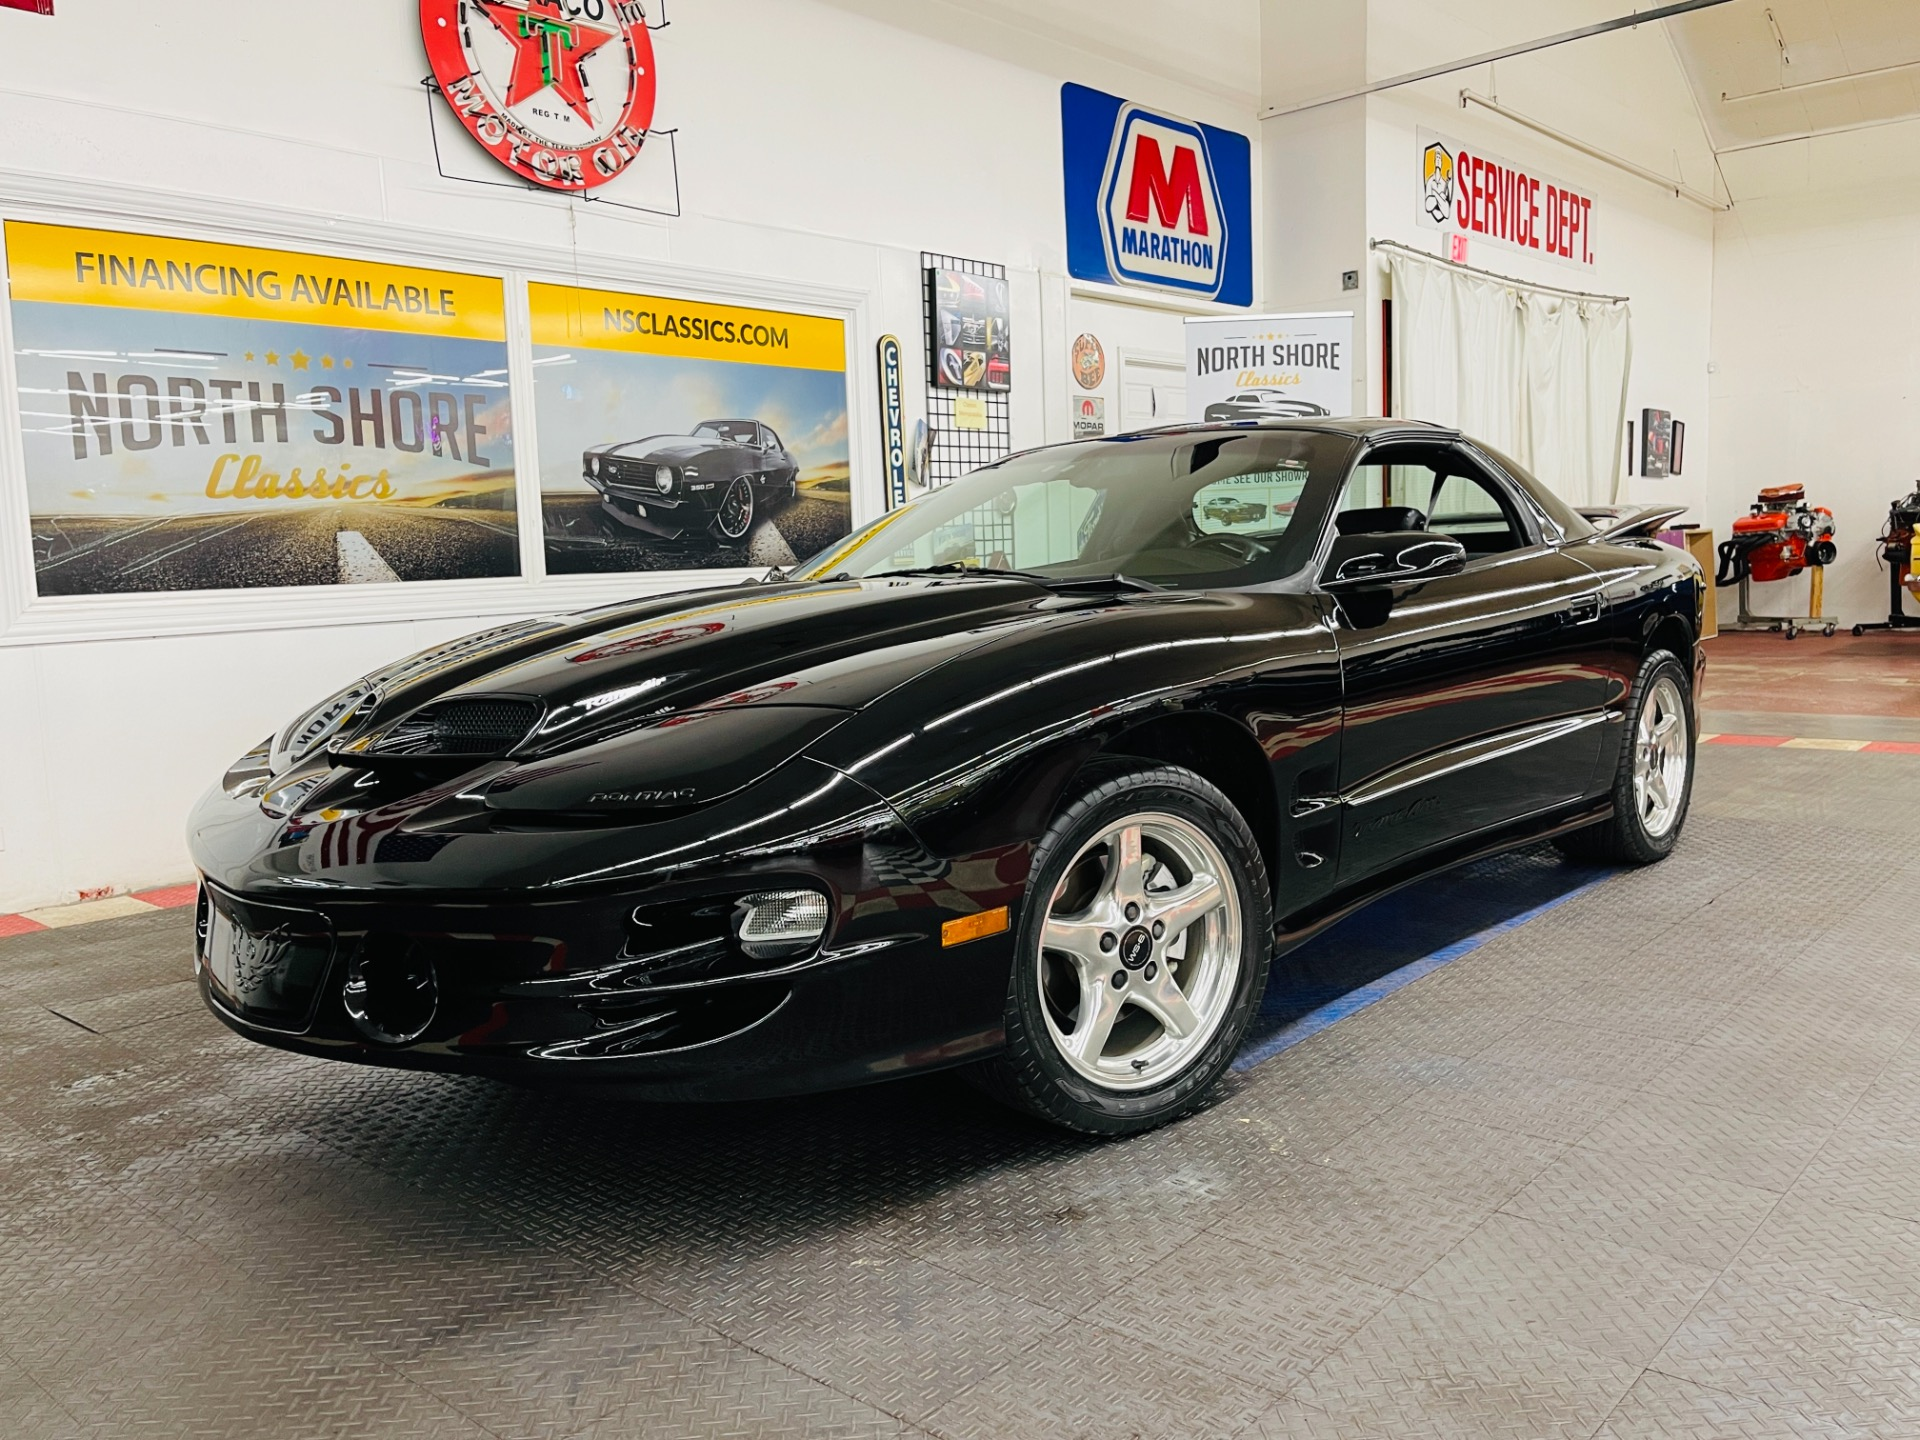 Used 2000 Pontiac Firebird - TRANS AM - T-TOPS - 6 SPEED MANUAL - LOW MILES - SEE VIDEO | Mundelein, IL